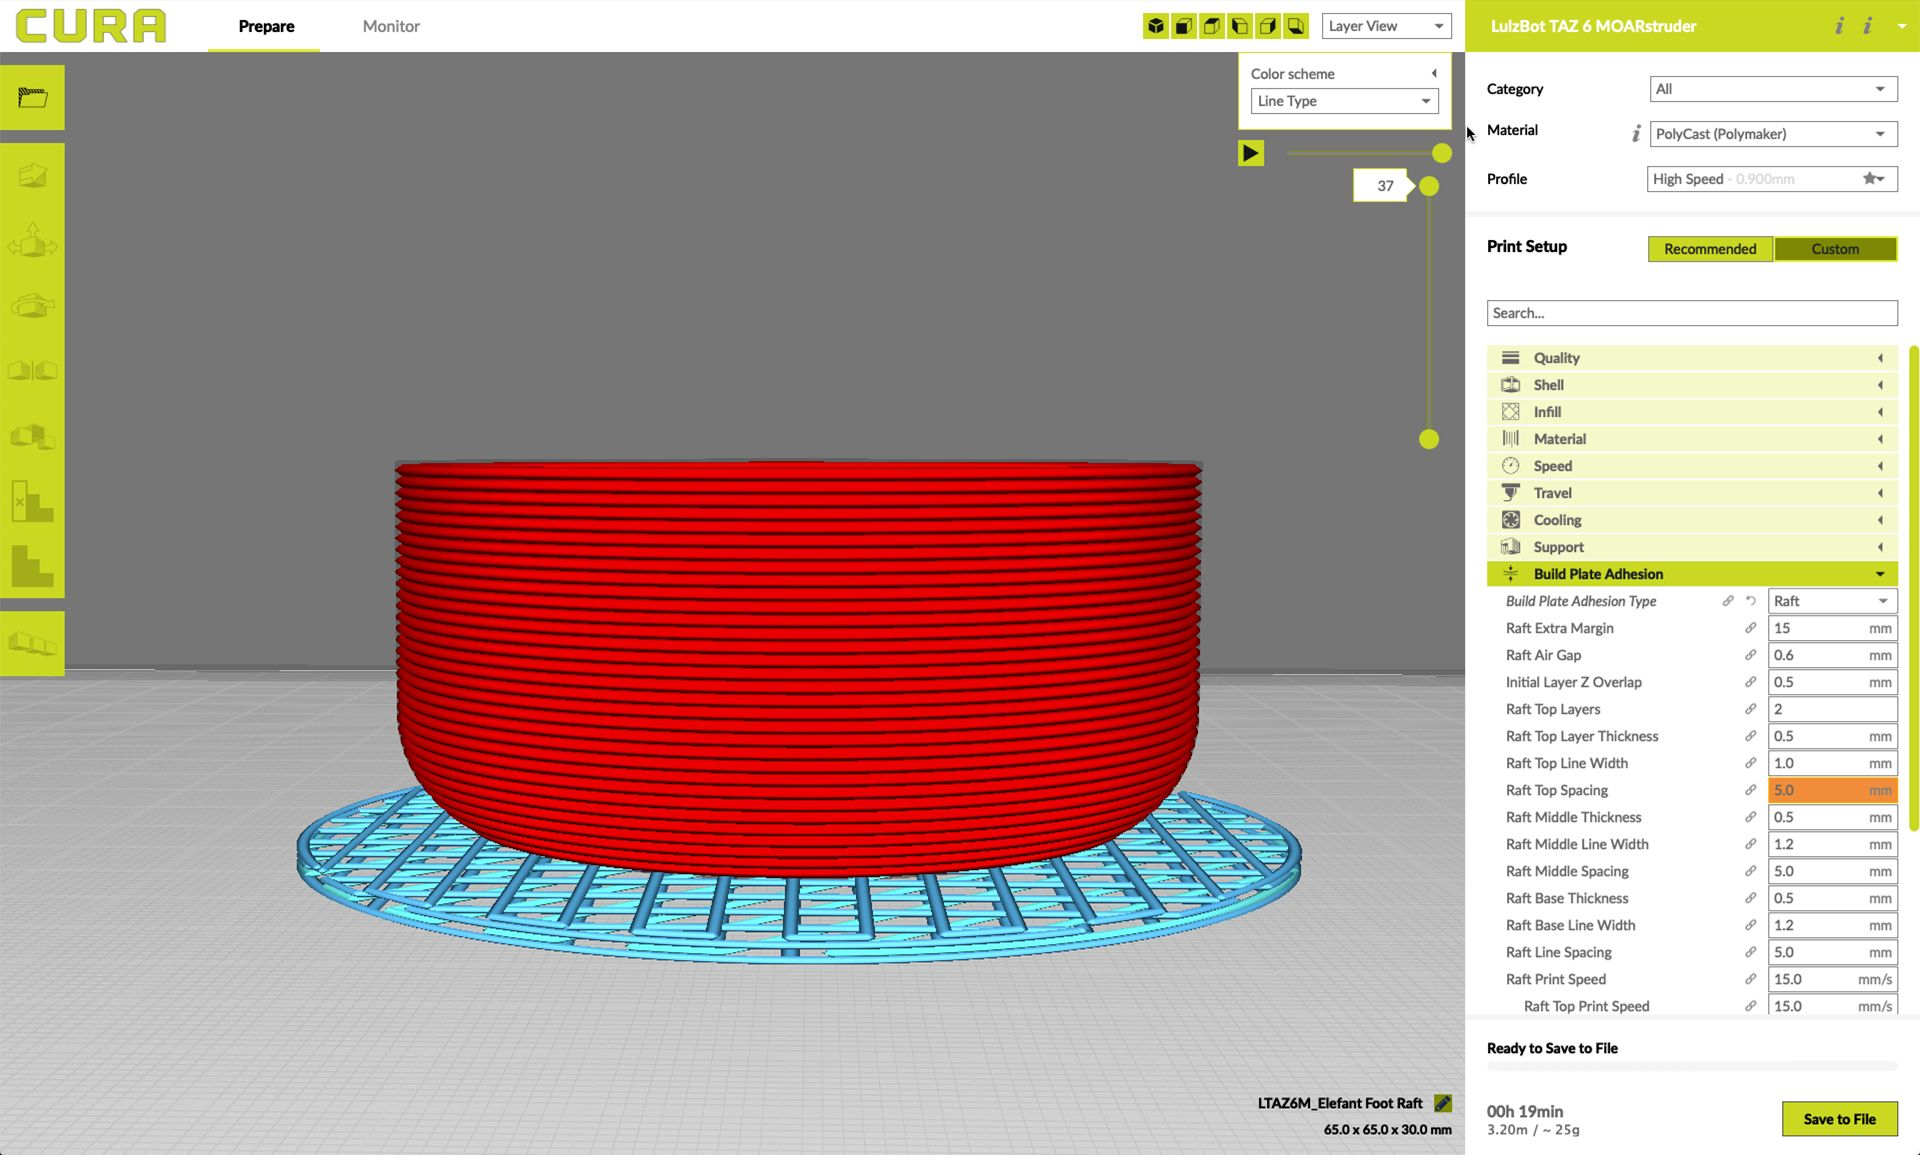 Model of a raft in Lulzbot's Cura slicer software